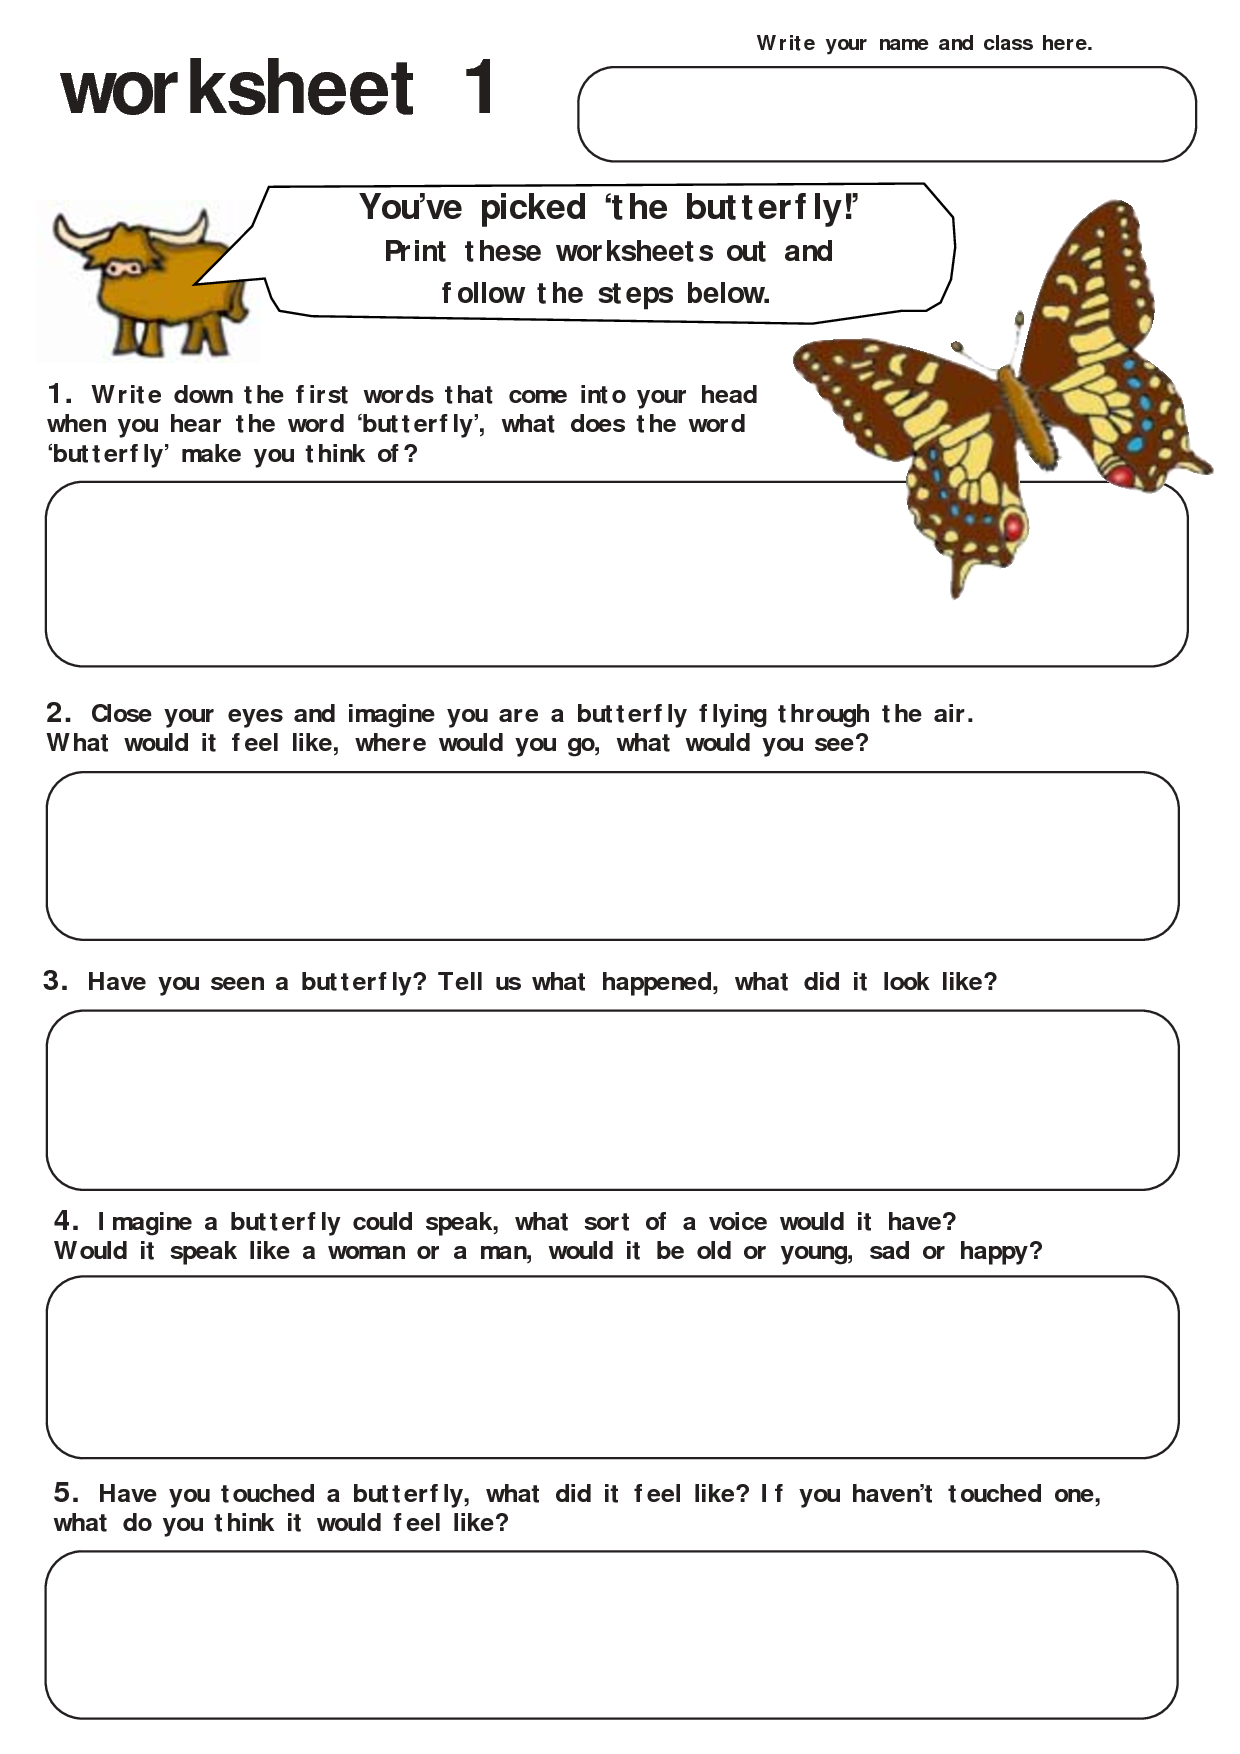 Printables Monarch Butterfly Worksheets butterflies and worksheets on pinterest